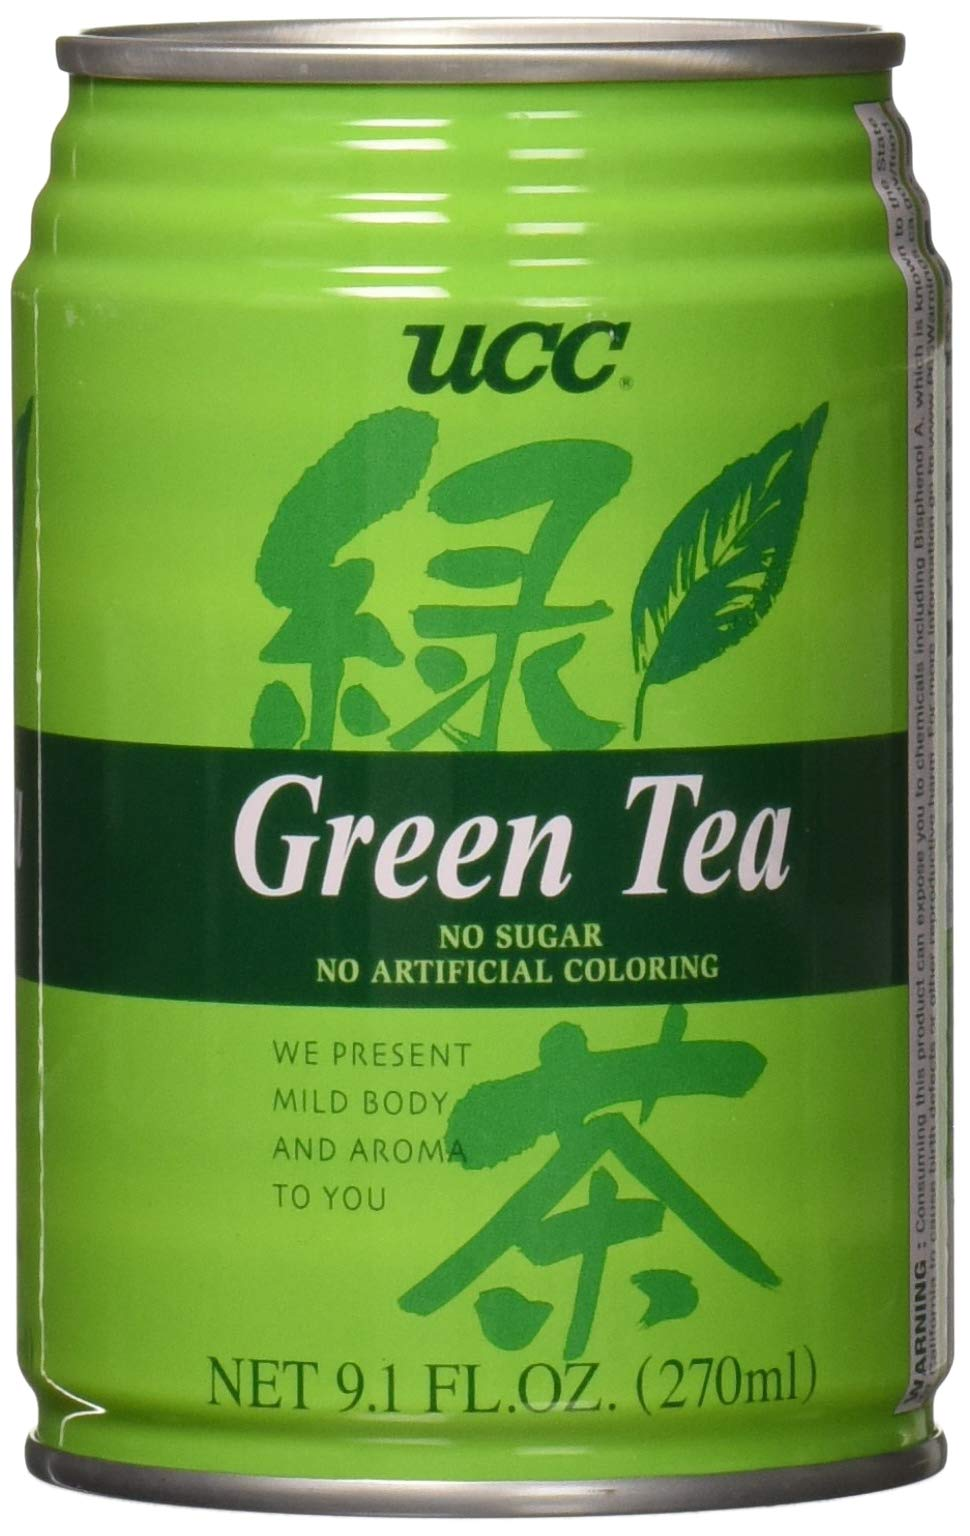 UCC UCC Green Tea, Green Tea, 9.10 fl. oz. (Pack of 24) by C&U (Image #1)